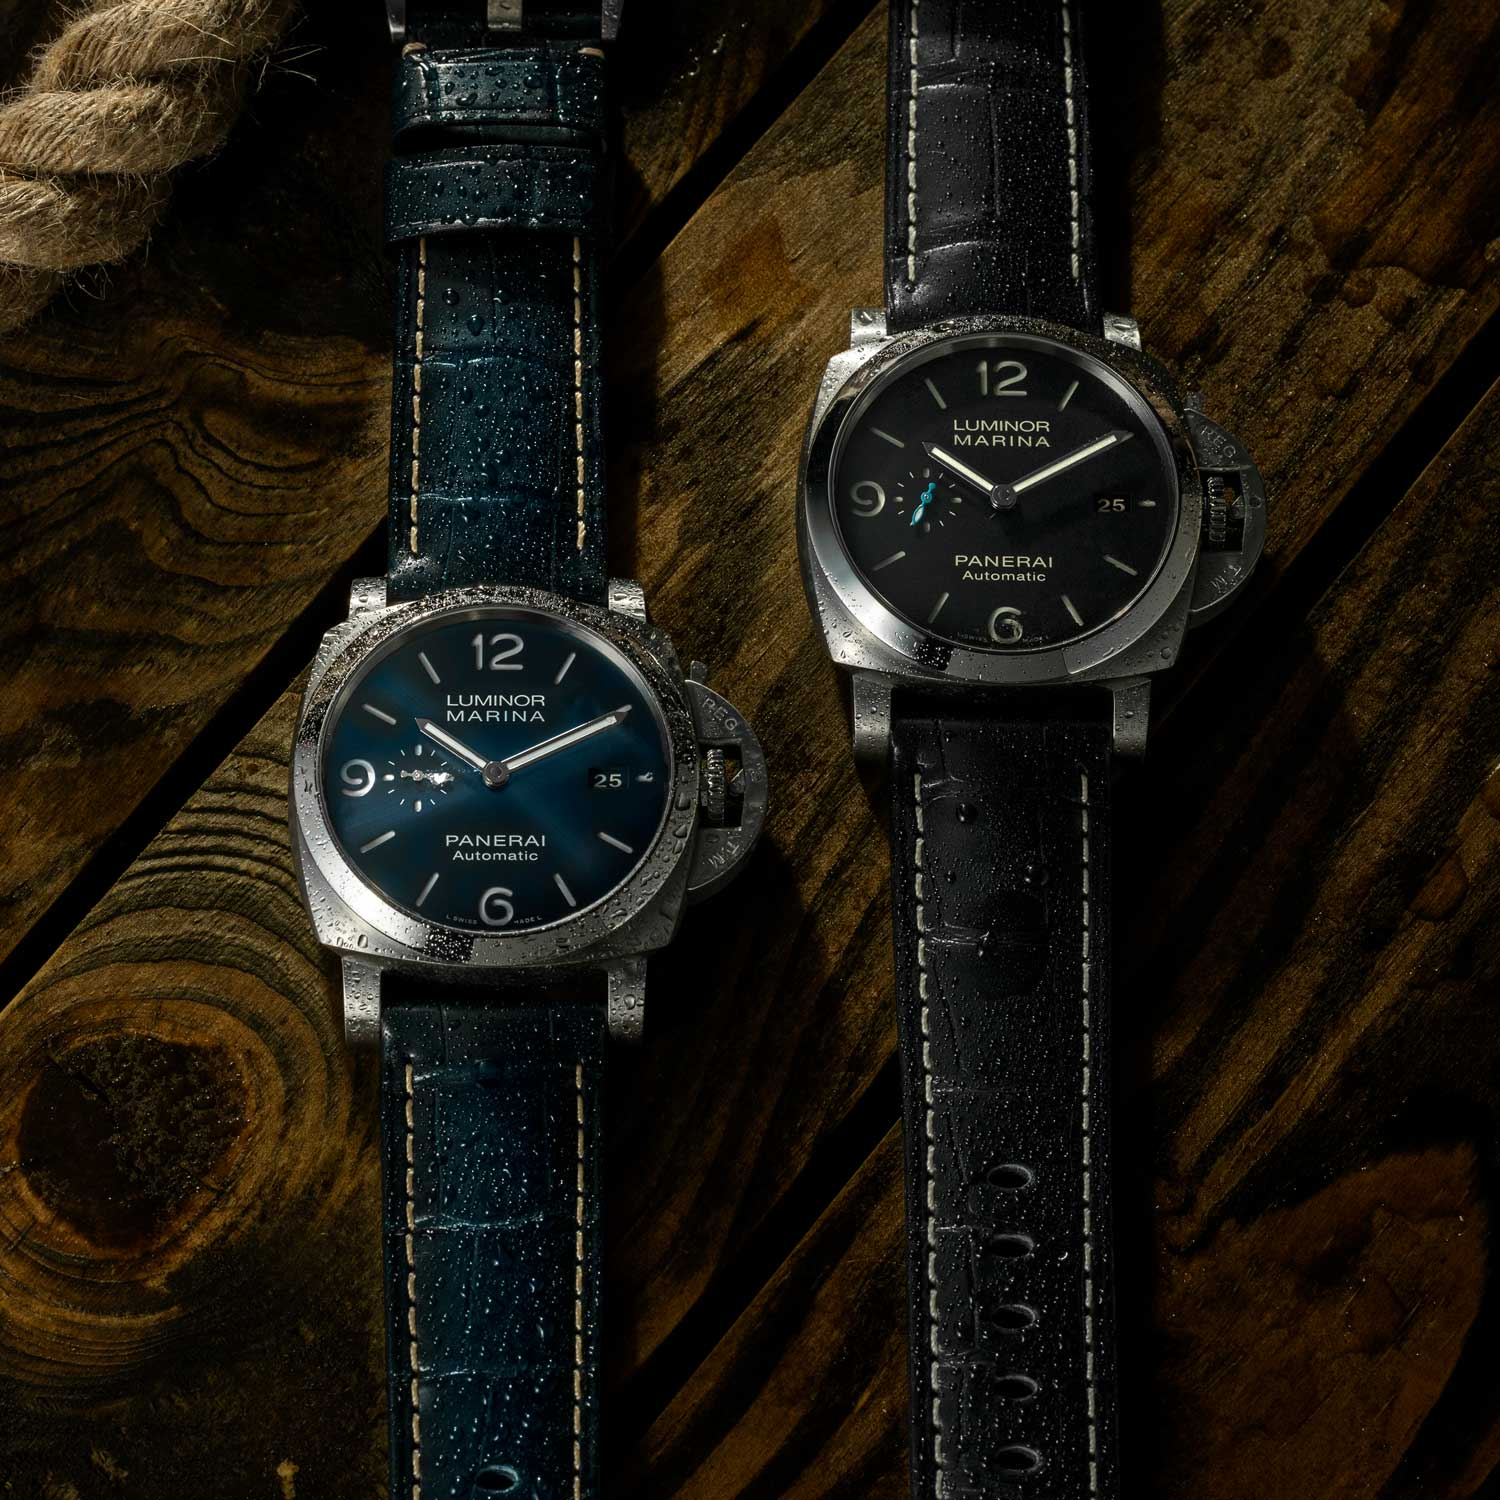 The PAM01313 and PAM01312, perfect for underwater adventures, piloting a craft in the America's Cup, sailing the Amalfi Coast, or simply lifting a glass of rosé at the local trattoria. (©Revolution)